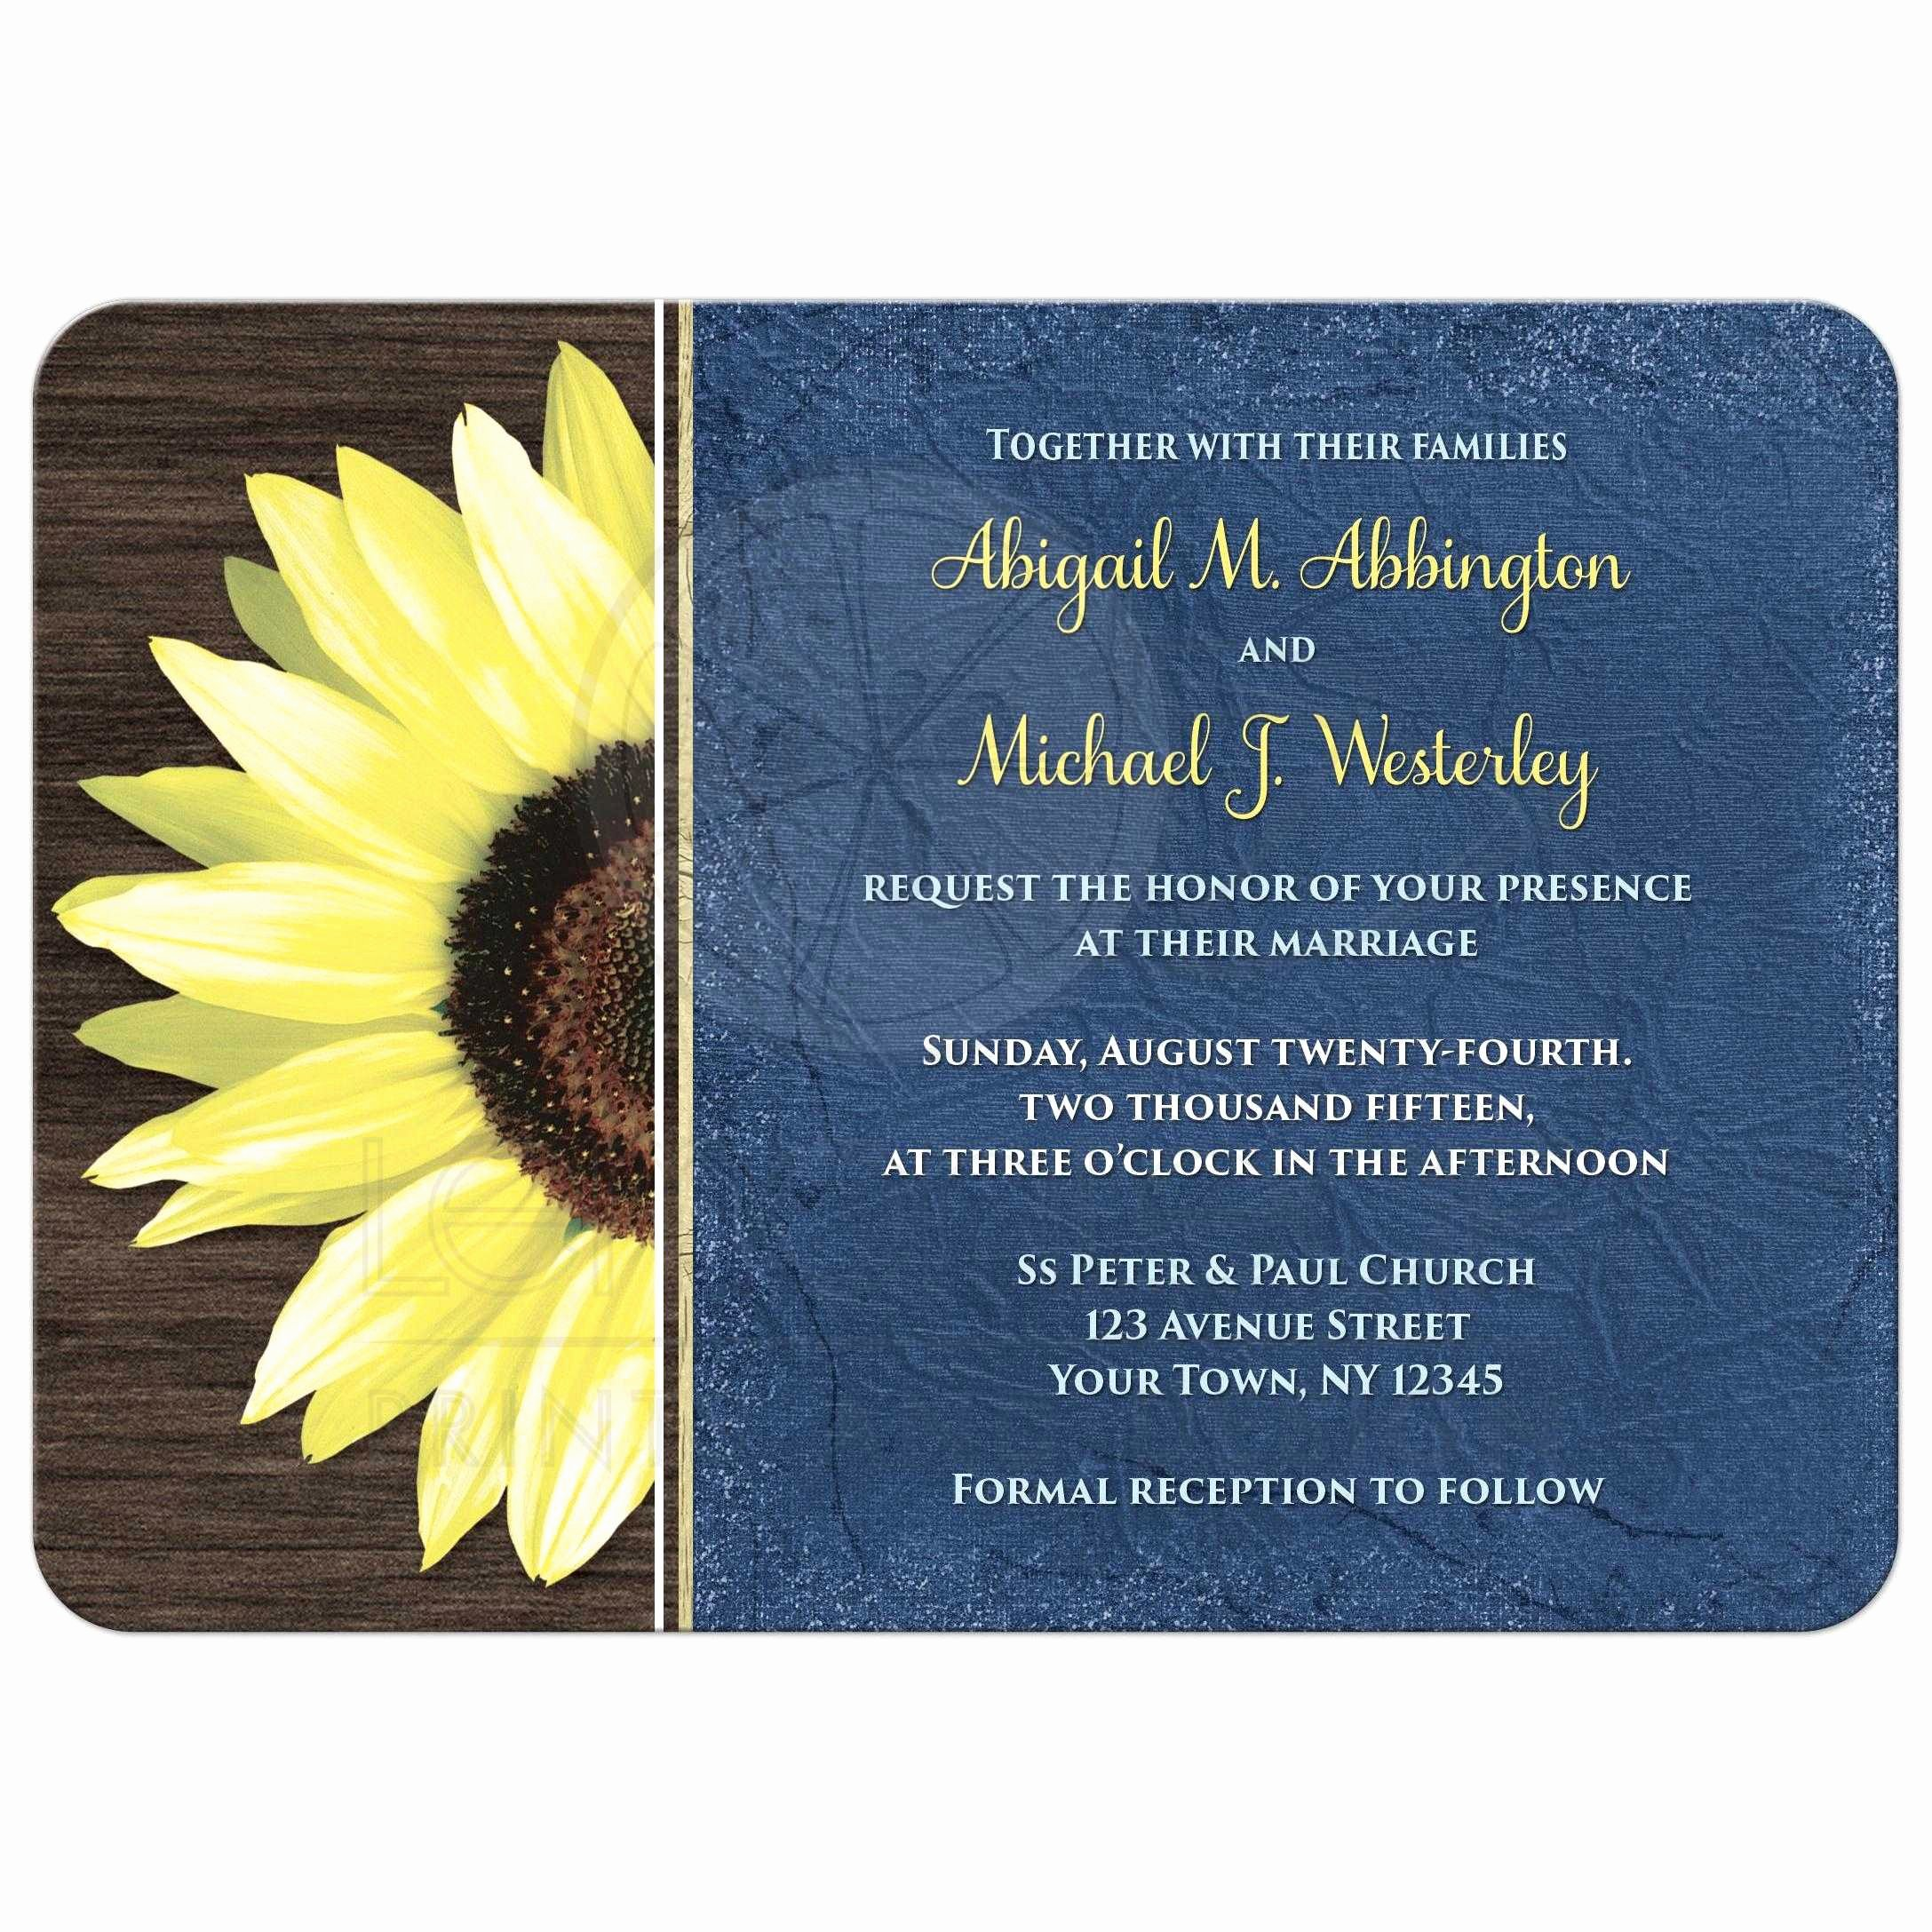 Rustic Sunflower Wedding Invitations Beautiful Wedding Invitations Rustic Sunflower and Blue